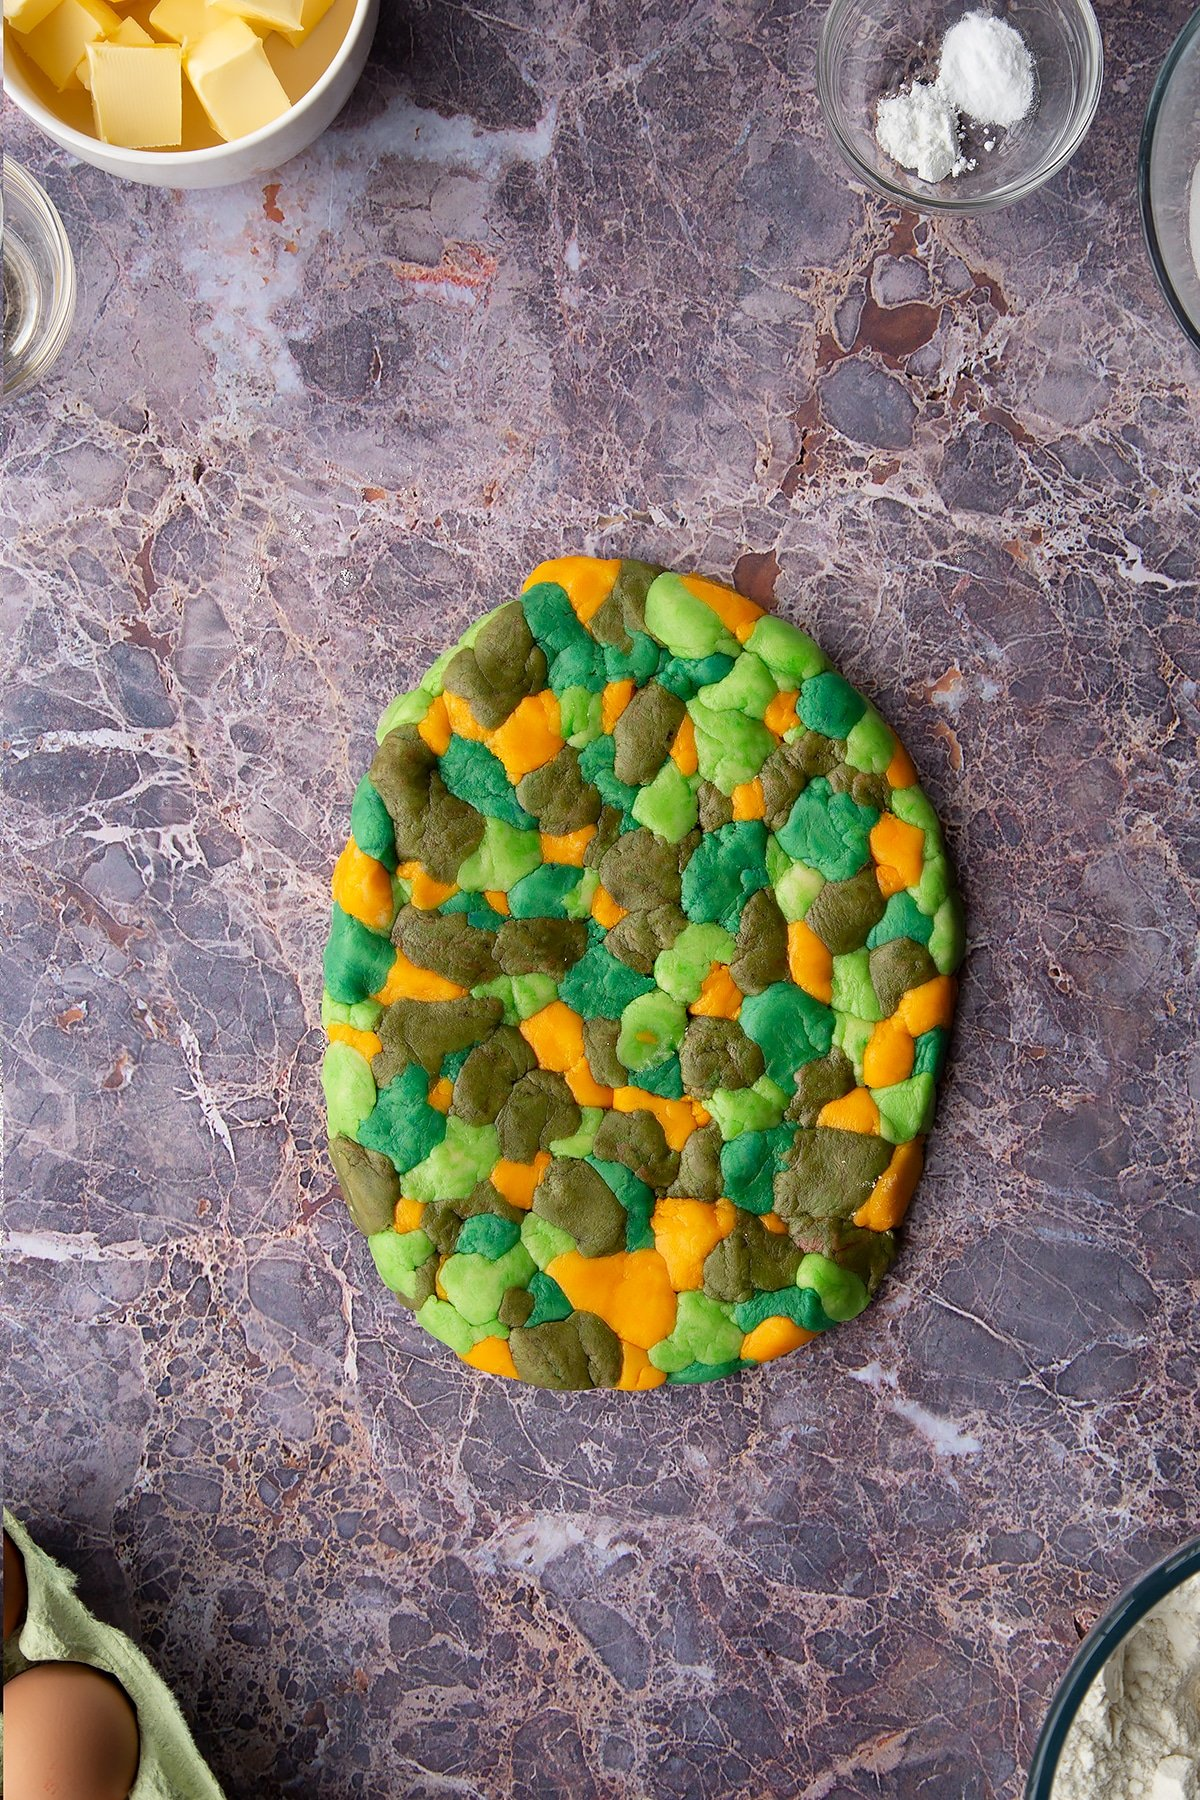 Overhead shot of small chunks of coloured cookie dough pieces laid out together on a surface combines together